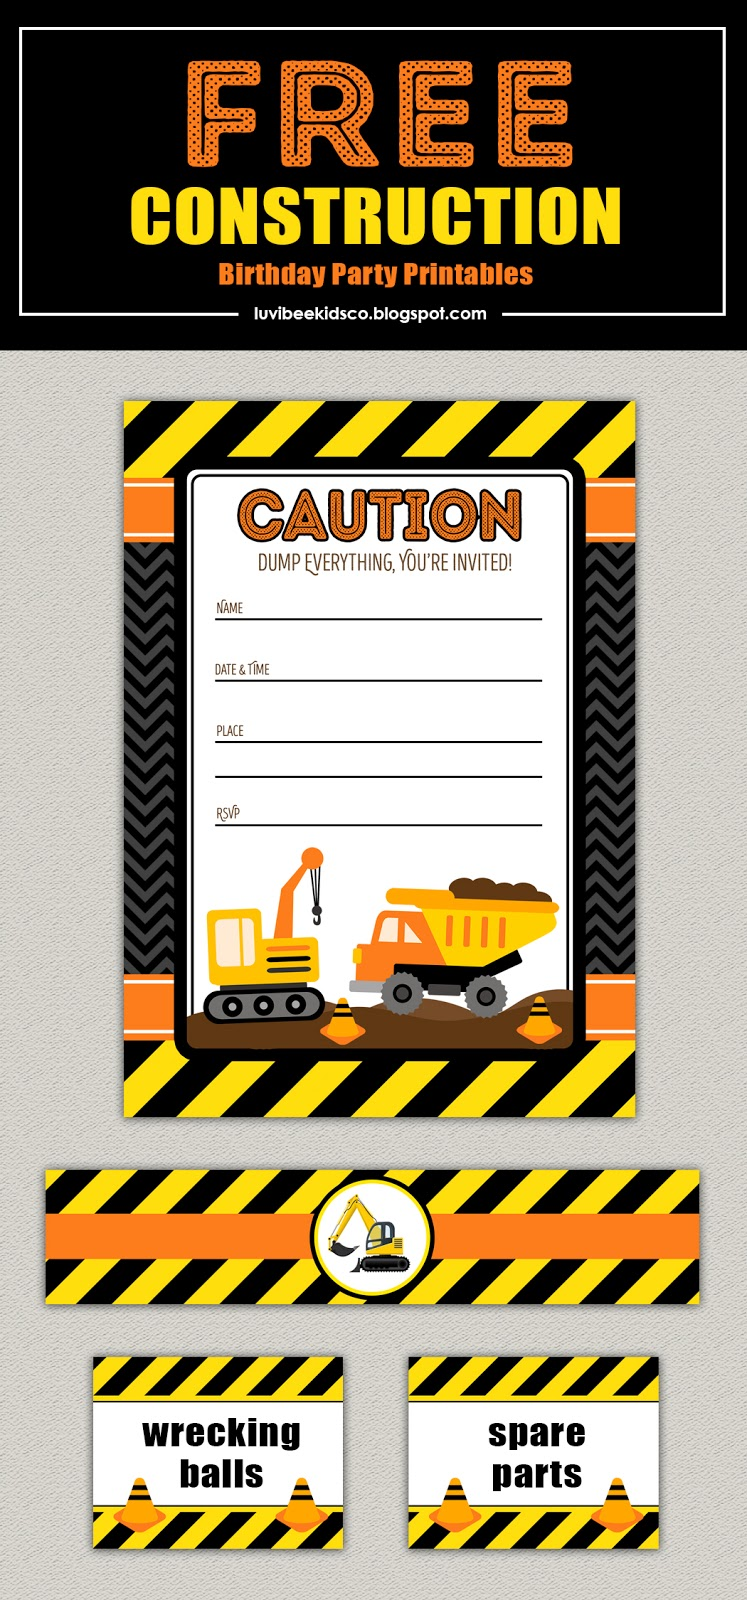 construction themed birthday invitations you print - Adamantium.co